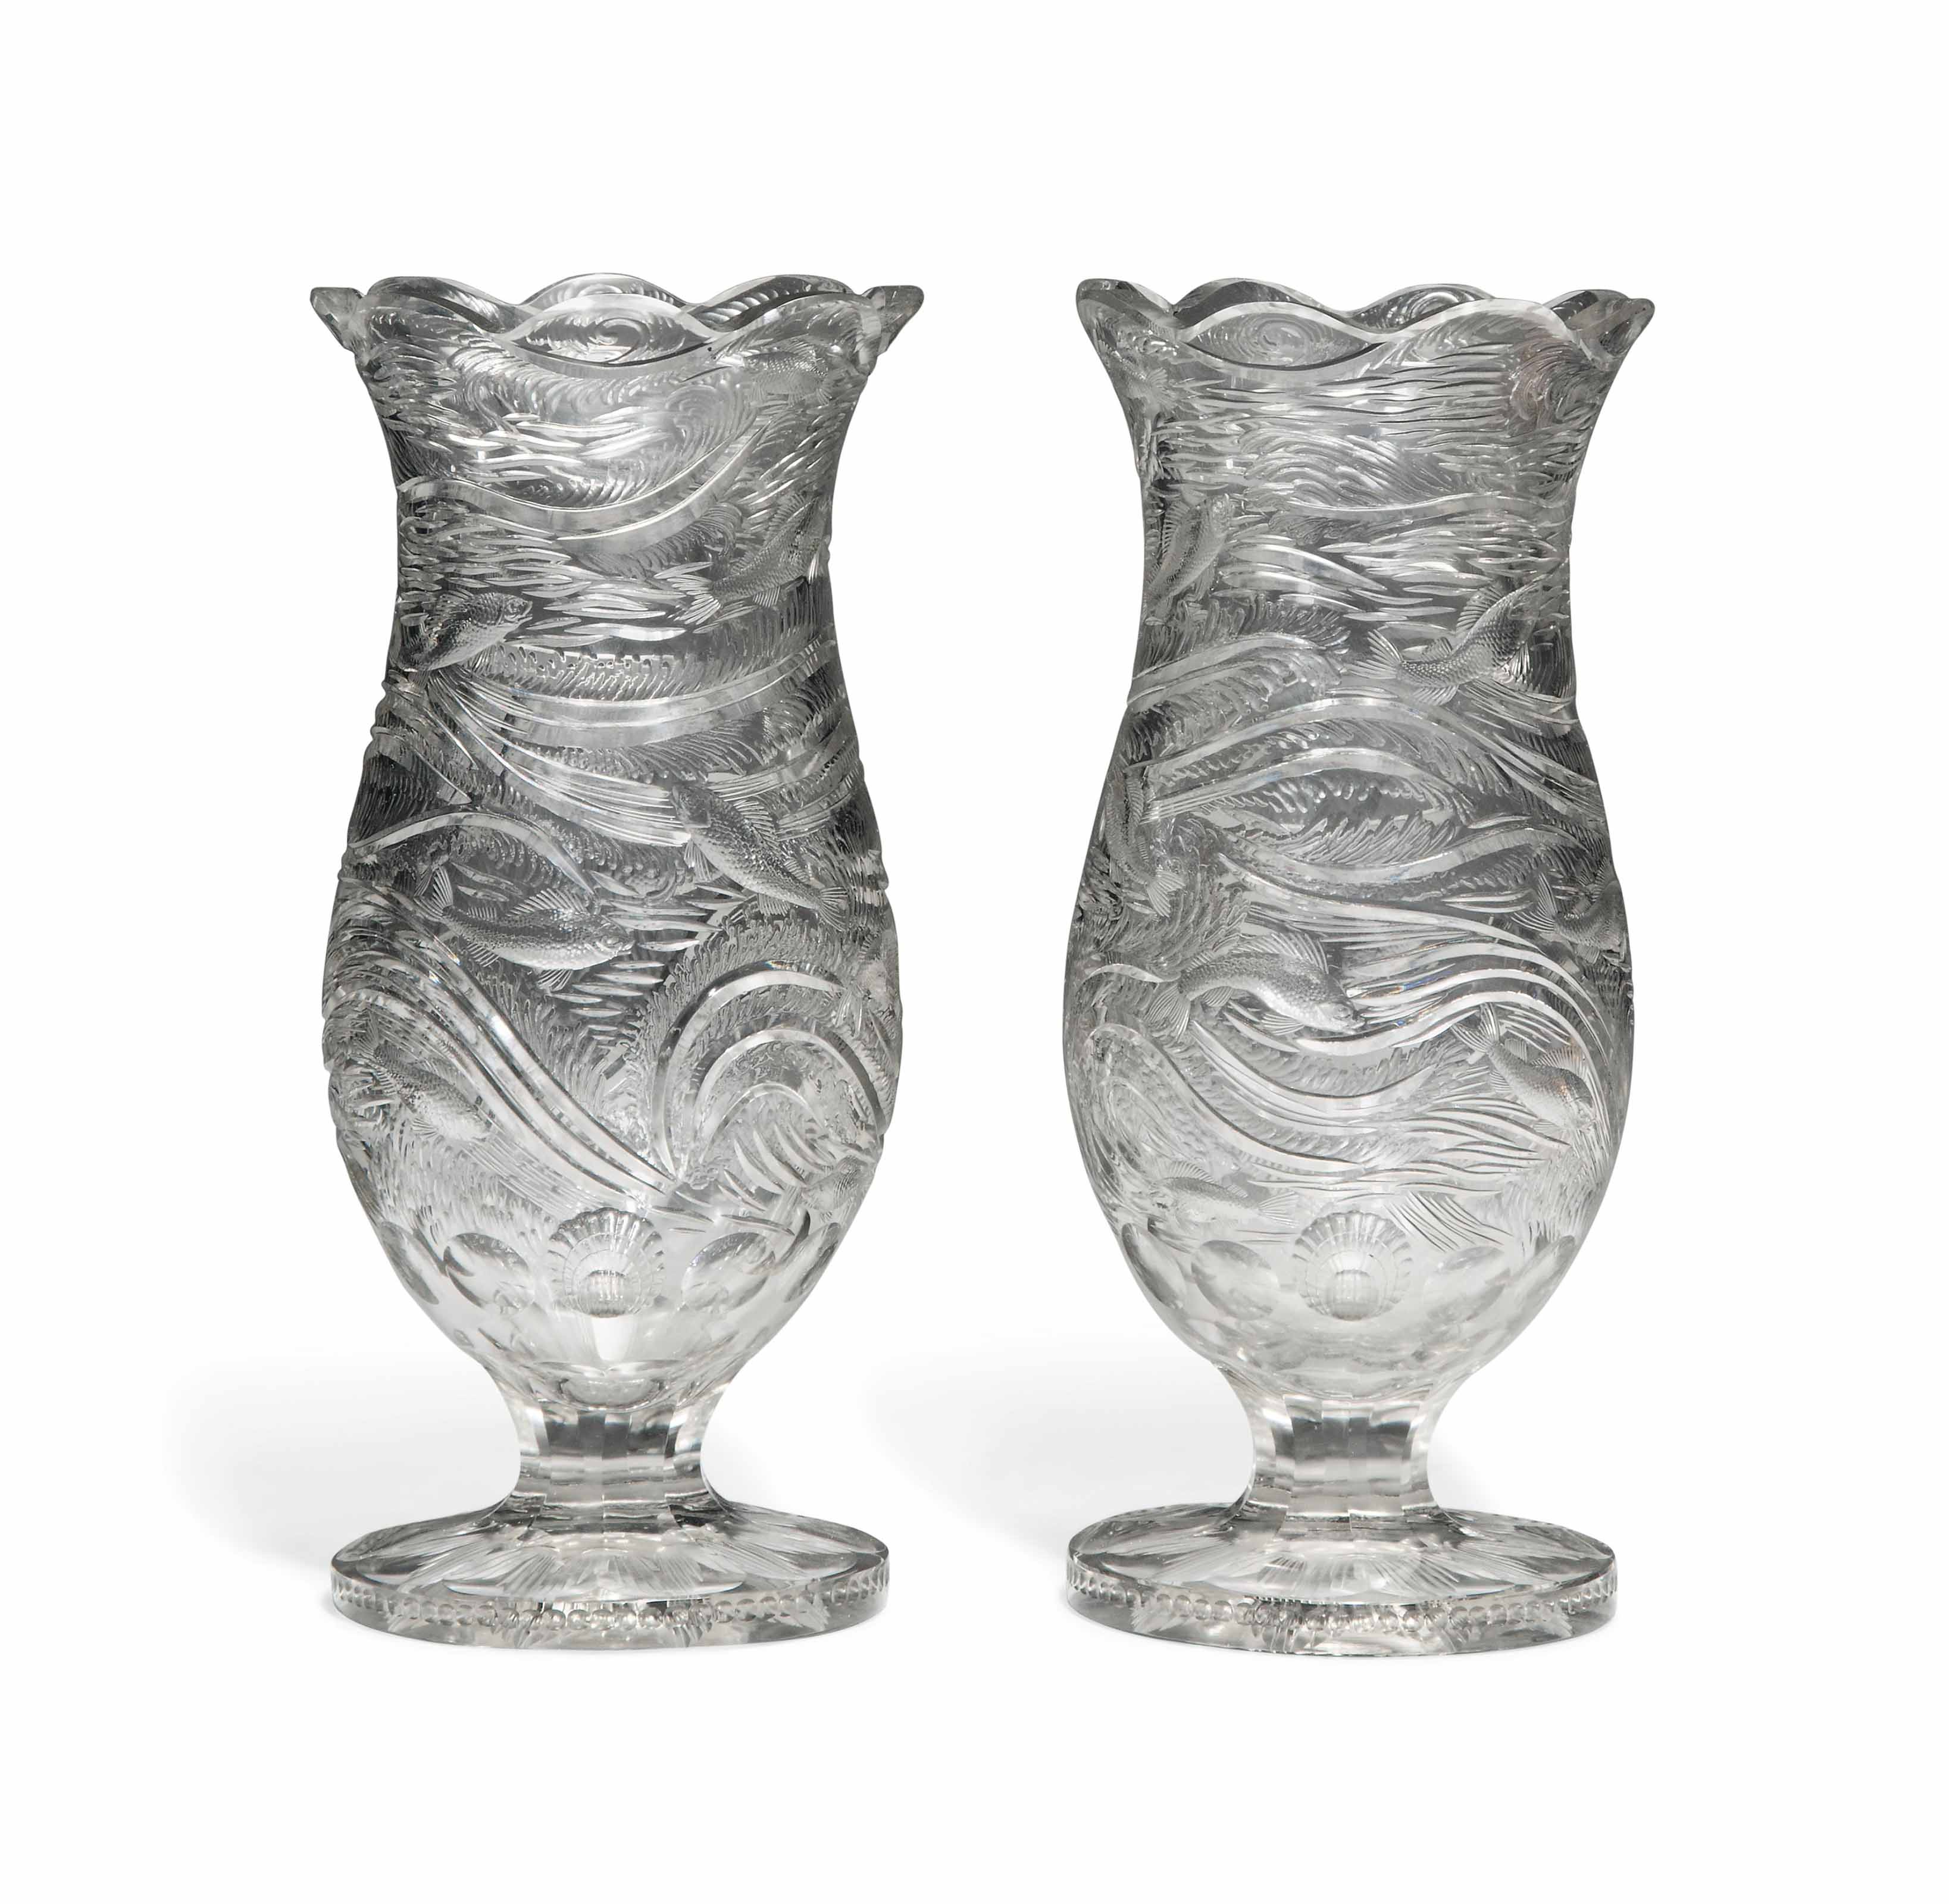 A PAIR OF ENGLISH CUT-GLASS 'ROCK CRYSTAL' VASES